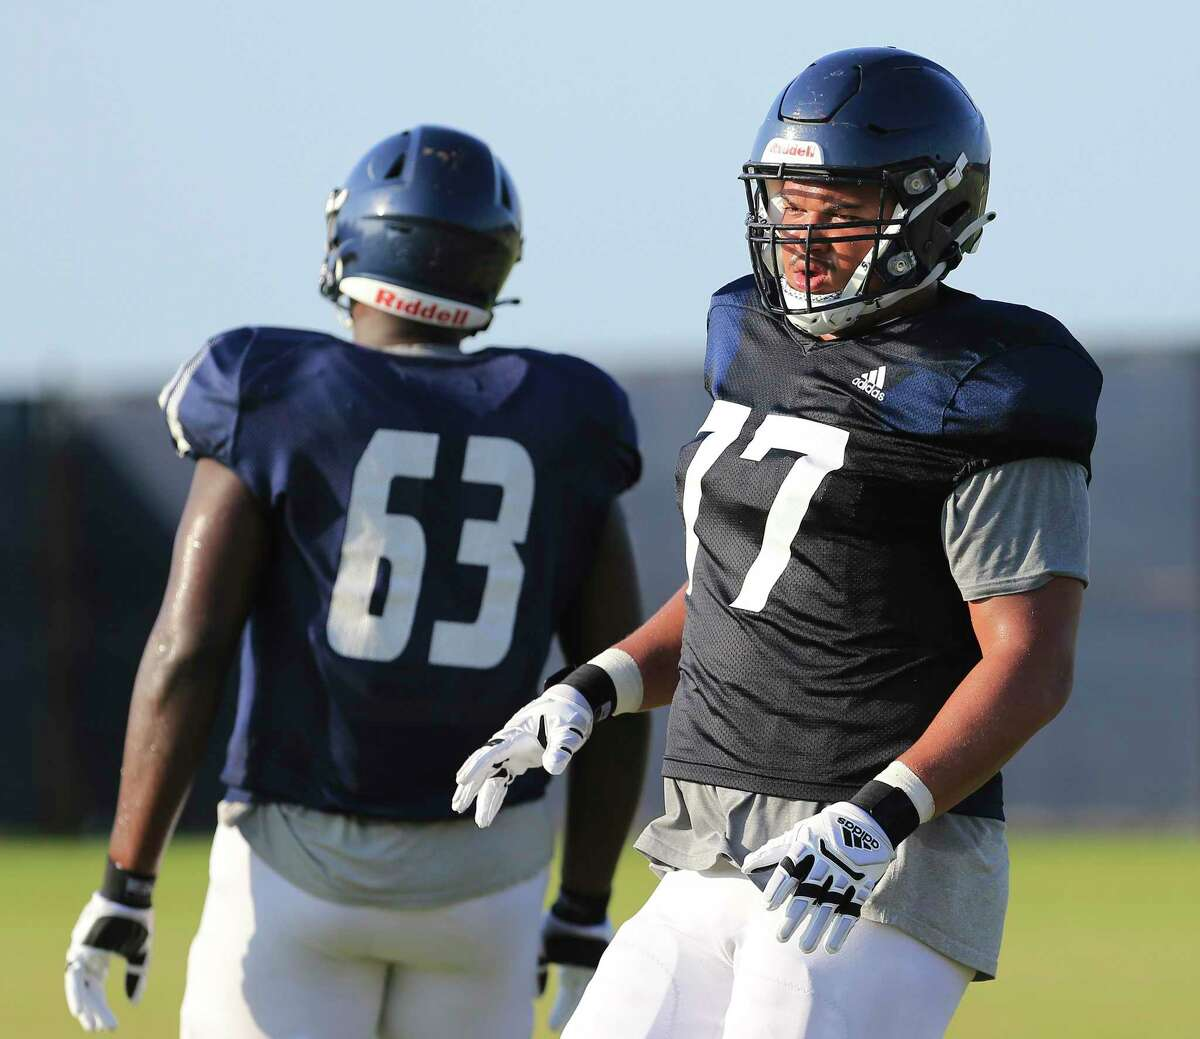 Offensive lineman Makai Hart (77) and other members of the UTSA football team take part in practice at the school's new Roadrunner Athletics Center of Excellence (RACE) on Thursday, Aug. 26, 2021 in preparation for their first game of the season. The Roadrunners will visit and play against Illinois on Sept. 4.